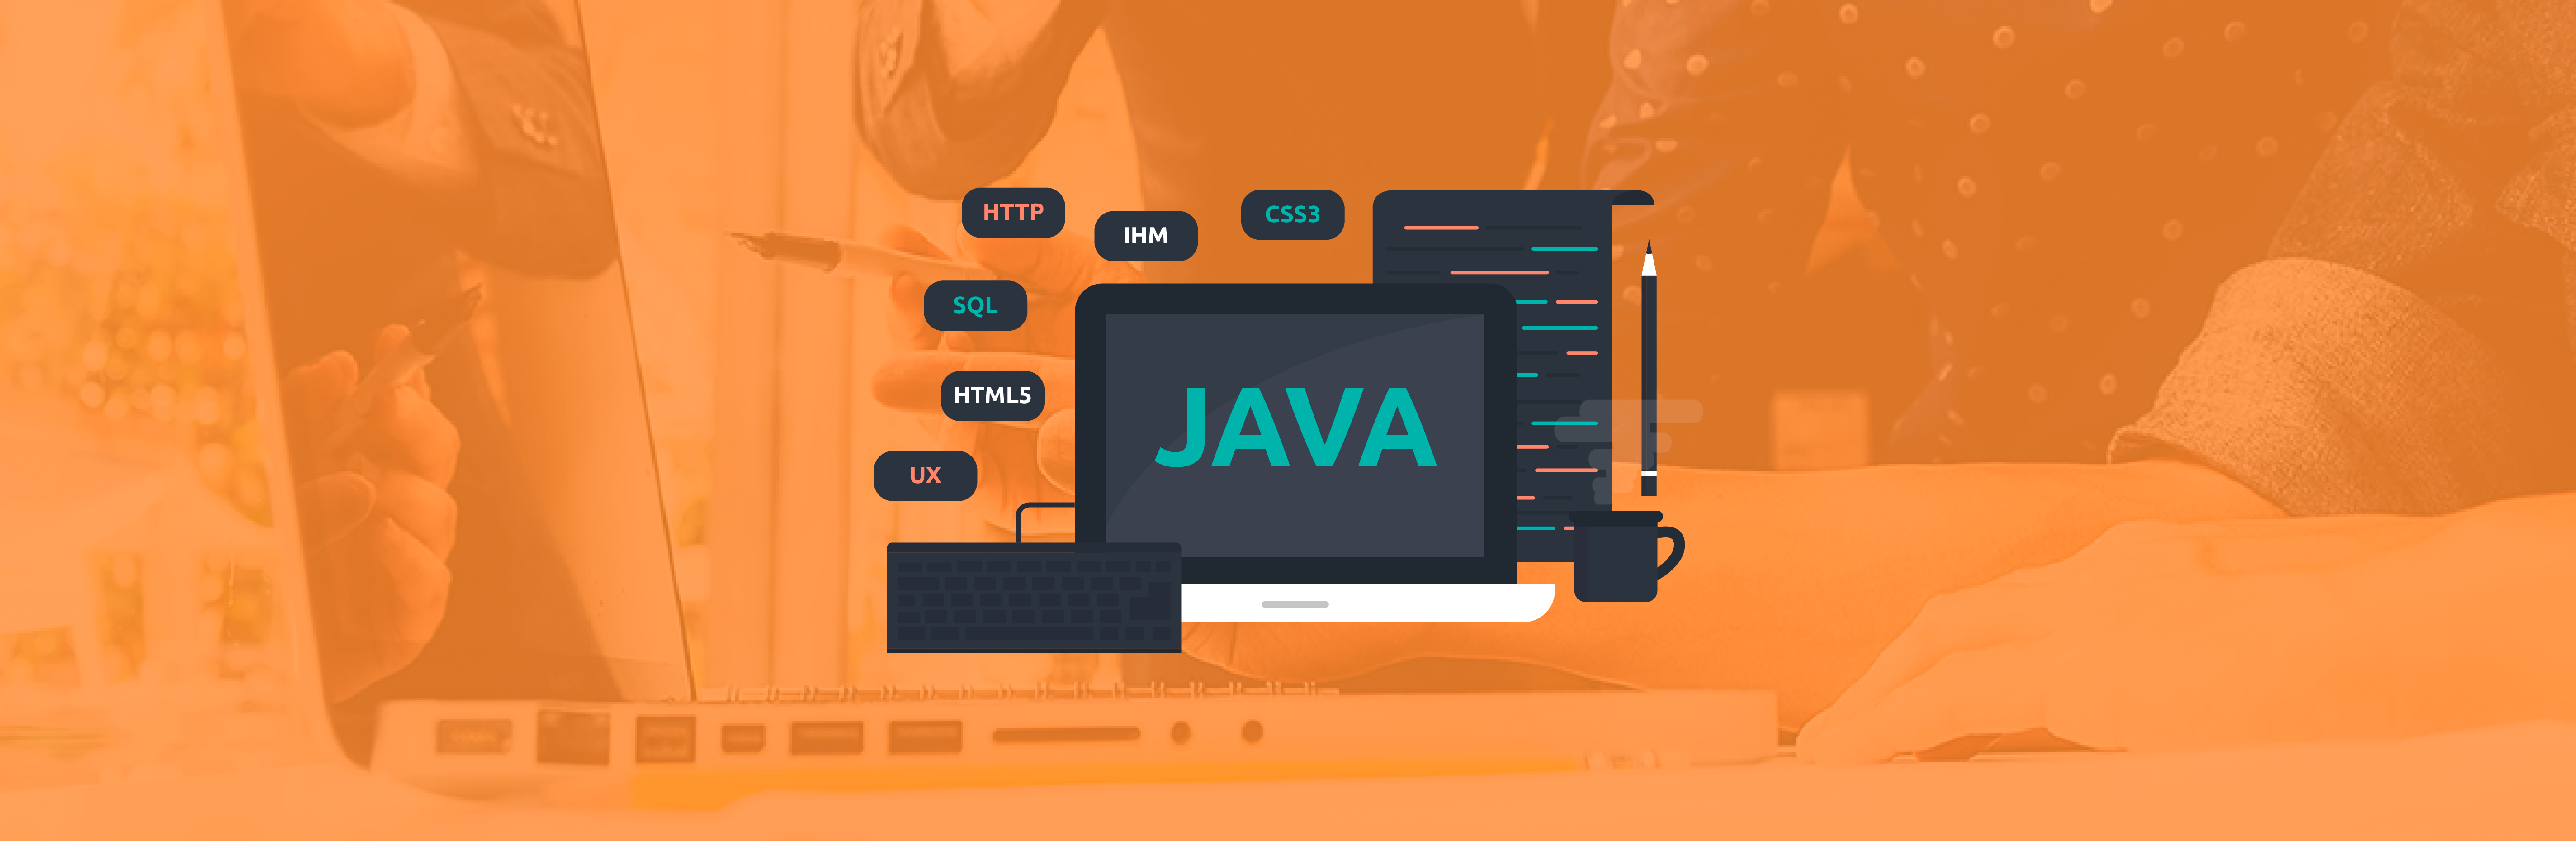 Banner-Page-Java